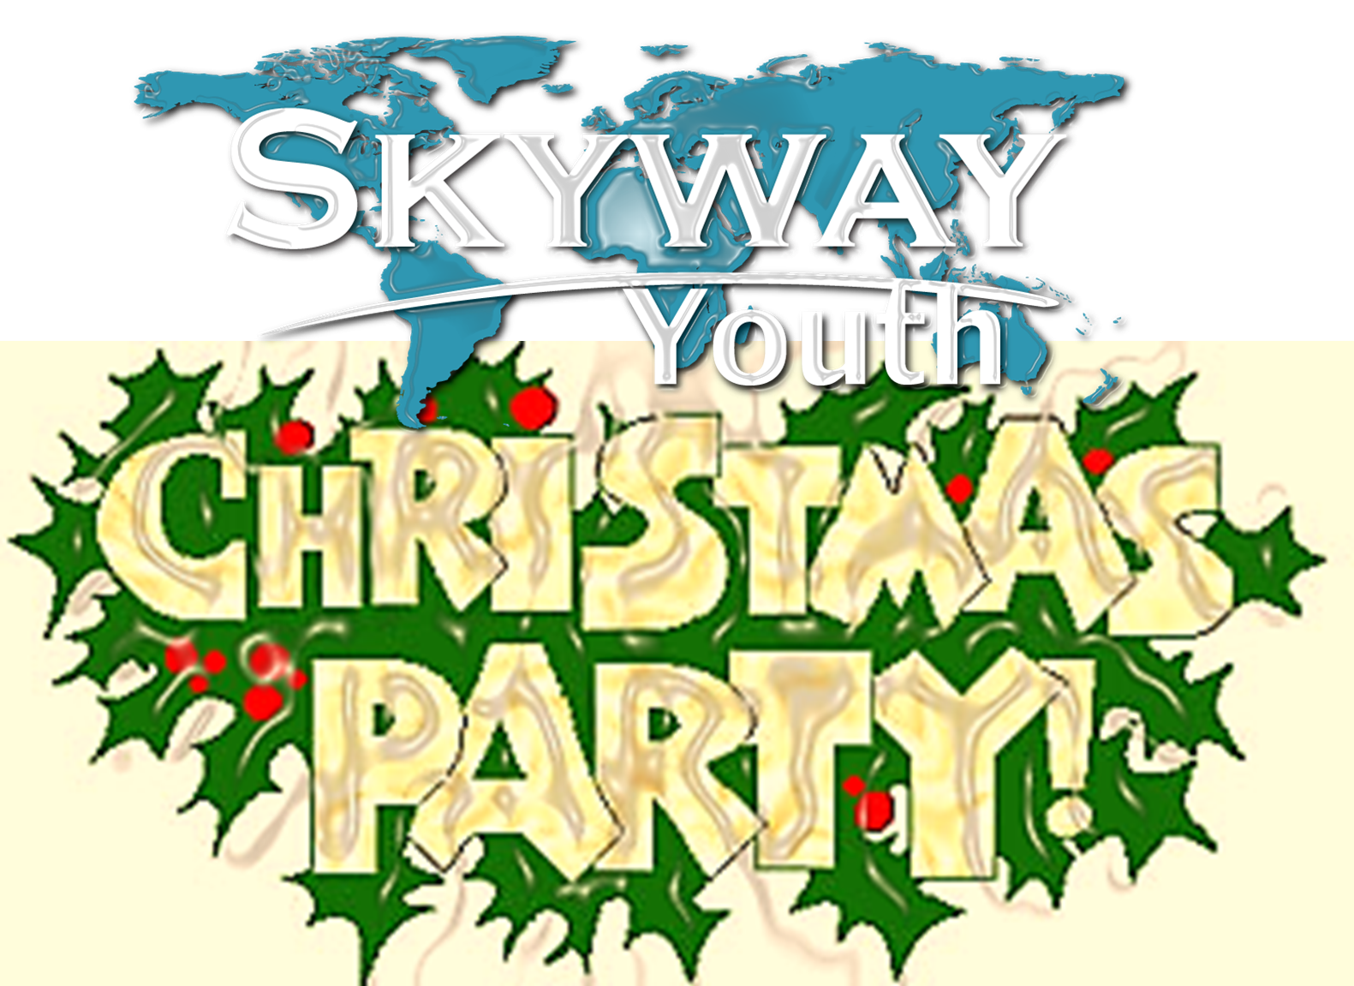 Church christmas party clipart black and white download https://skywaychurch.com/?p=28808 2017-03-20T22:15:10Z https ... black and white download